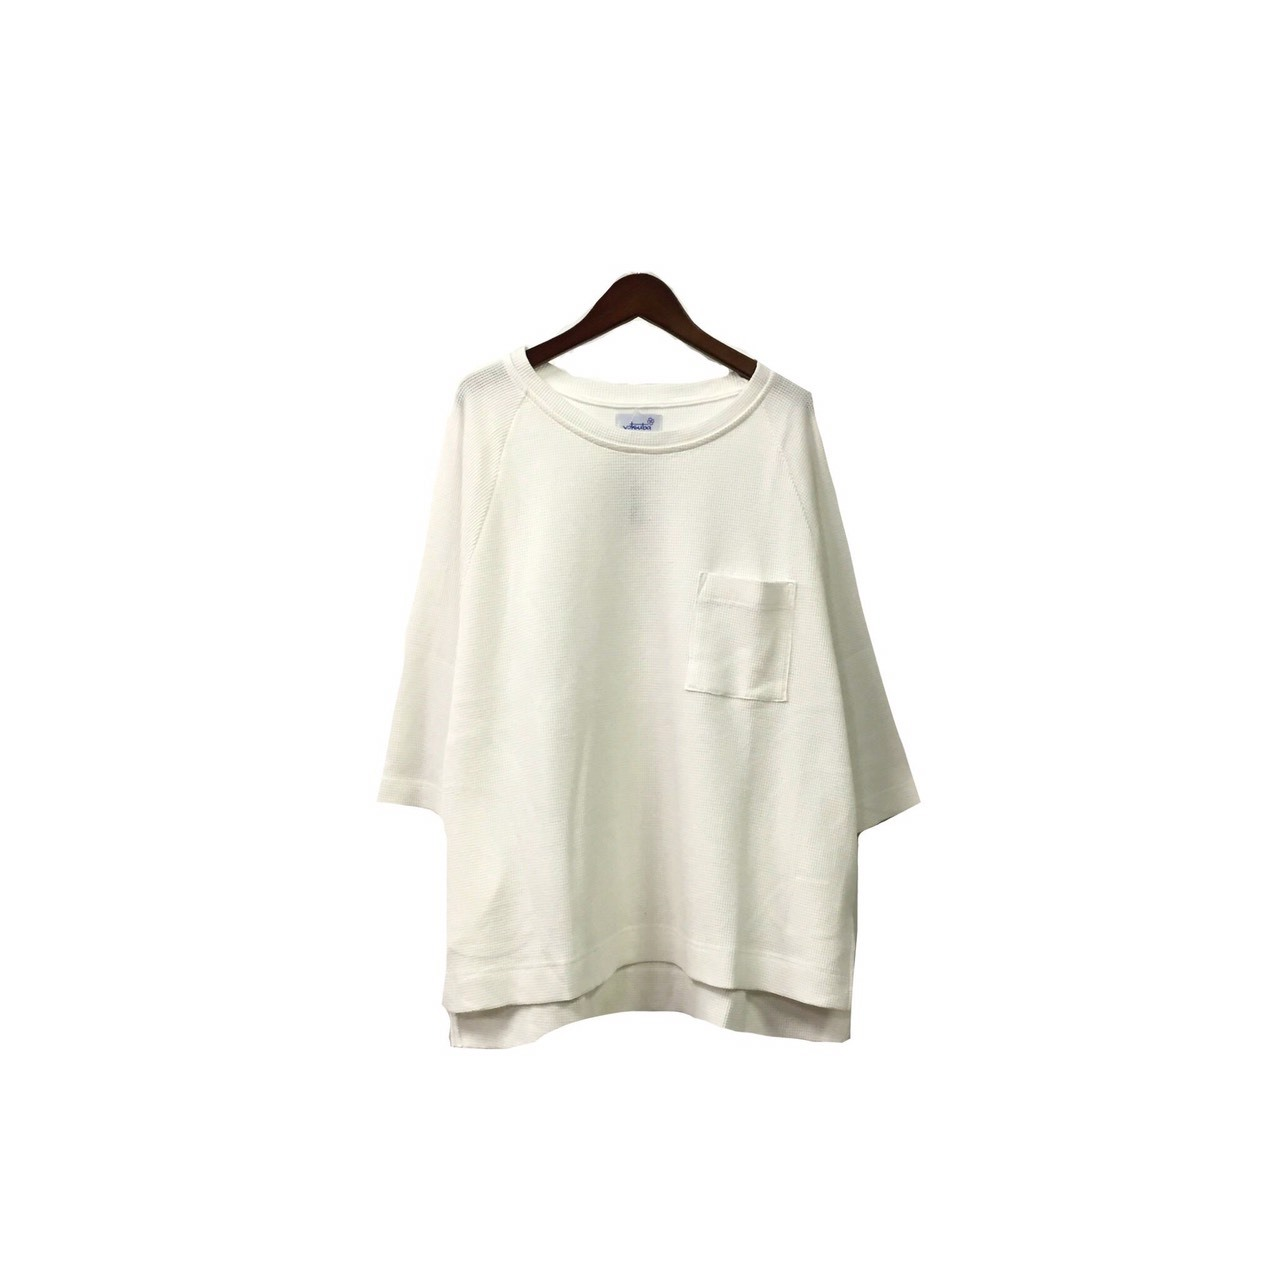 yotsuba - Thermal Tops / White ¥11000+tax